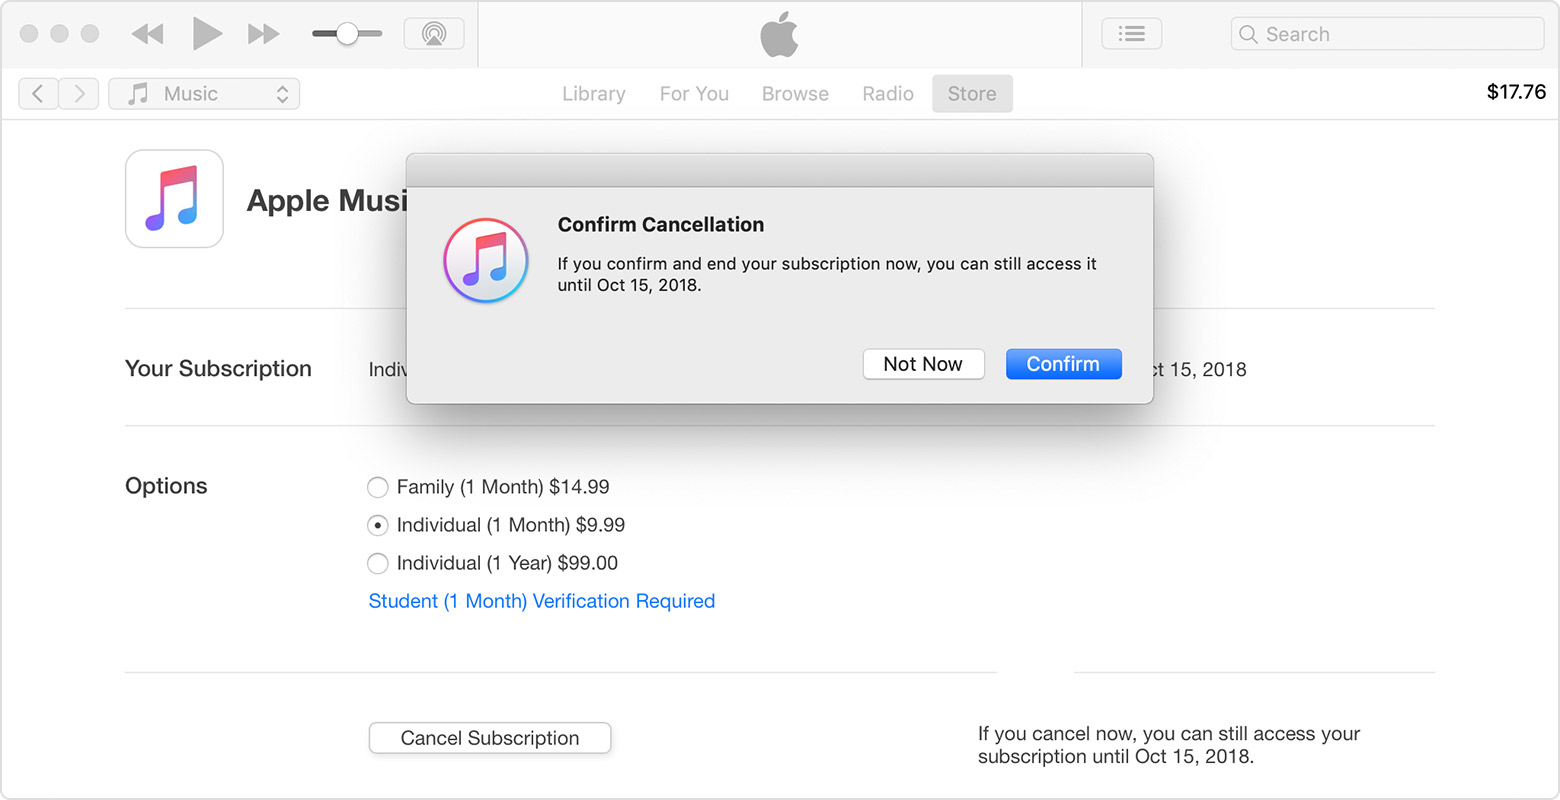 How do i cancel subscription through itunes